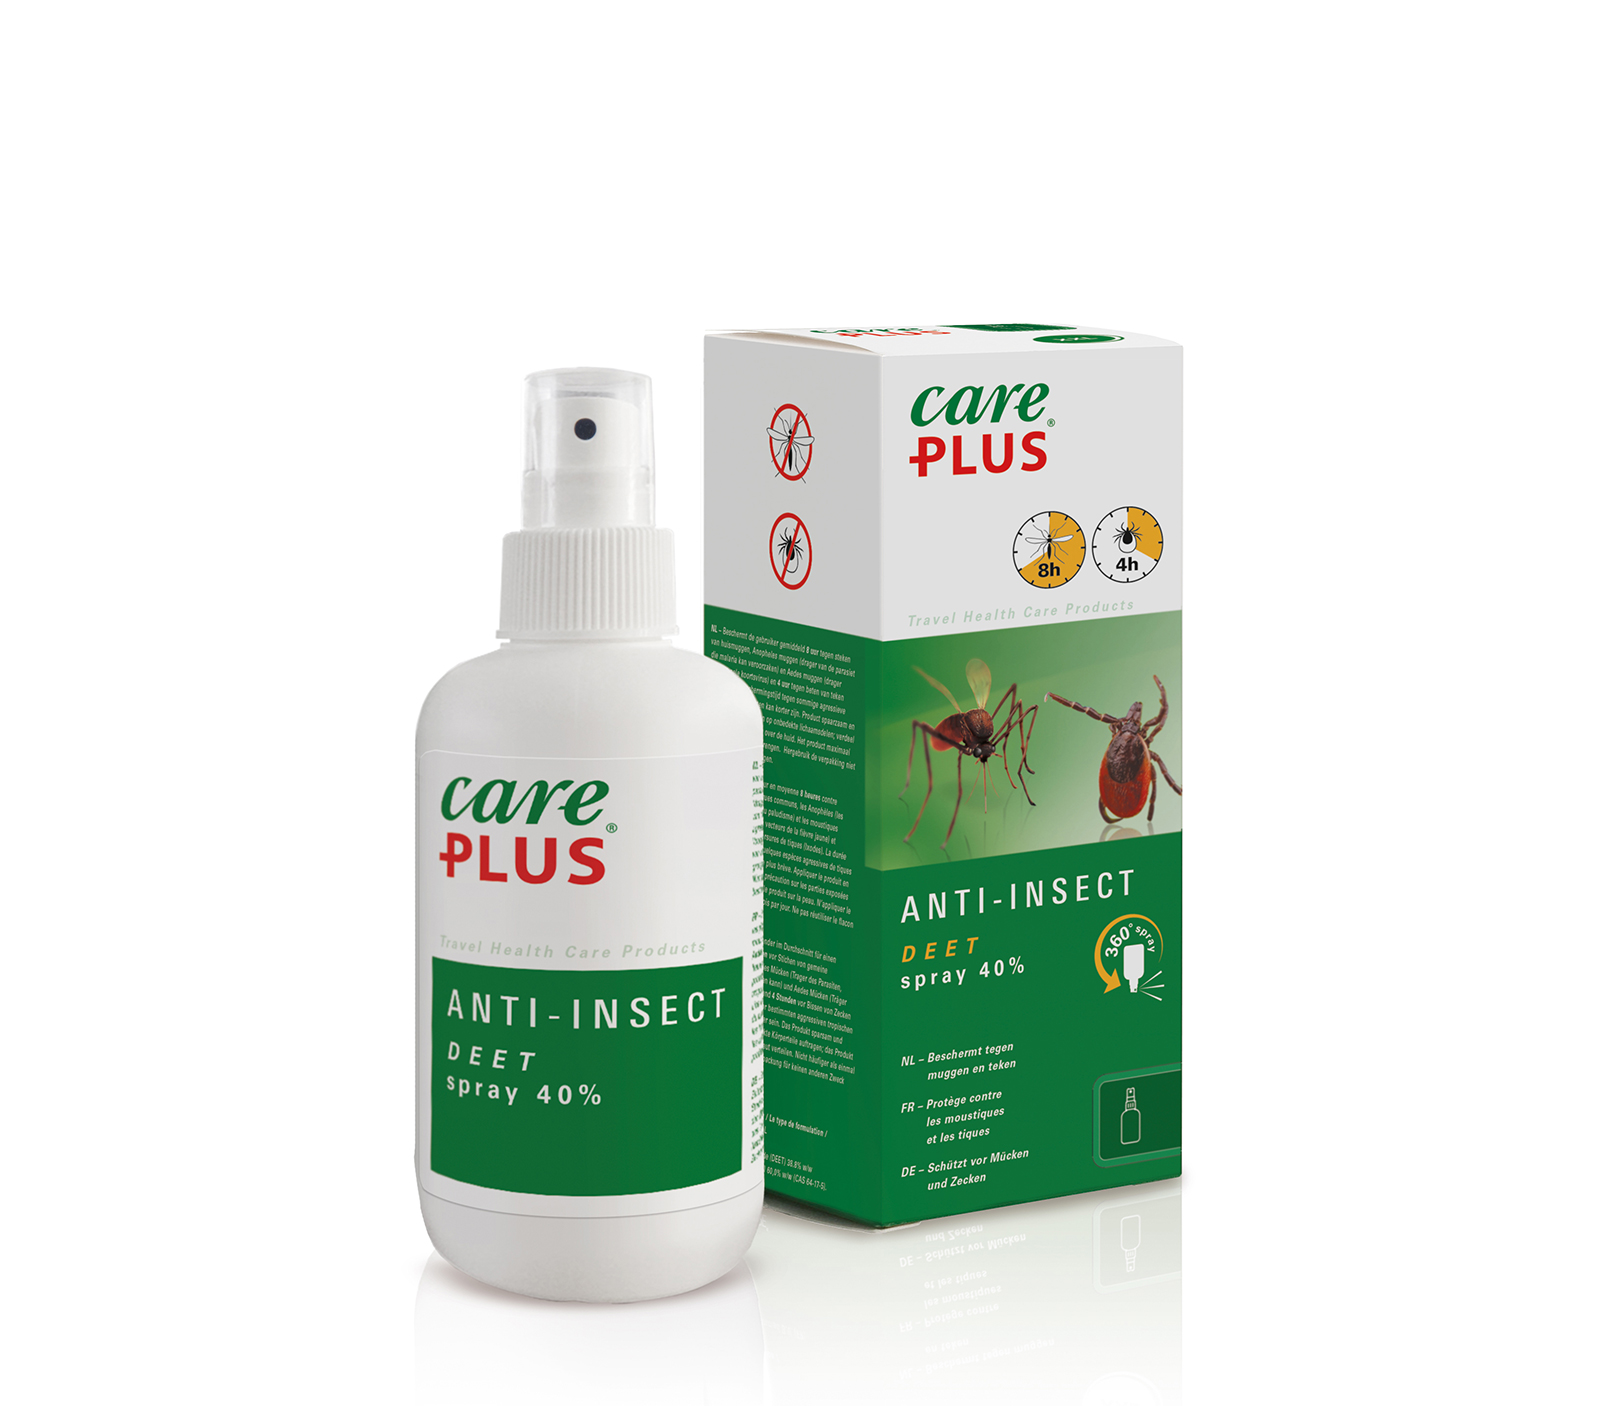 Care Plus Deet Anti-insect Spr 40% 200ml